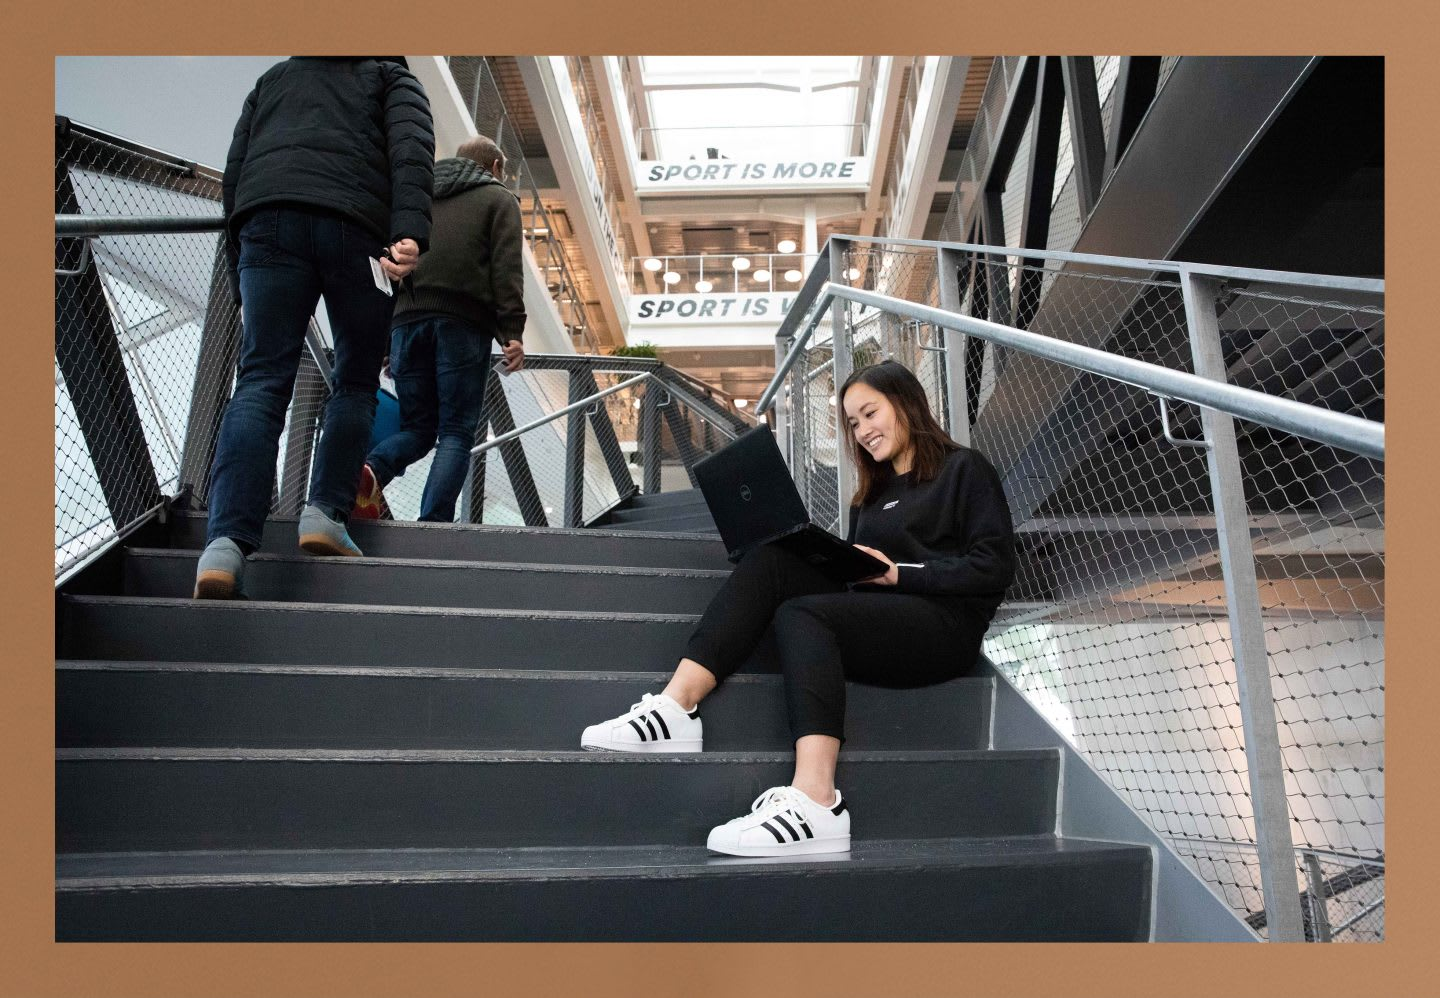 Thui Bui sitting in the starts of the adidas HQ working. Be Unique, self development, personal growth, GamePlanA